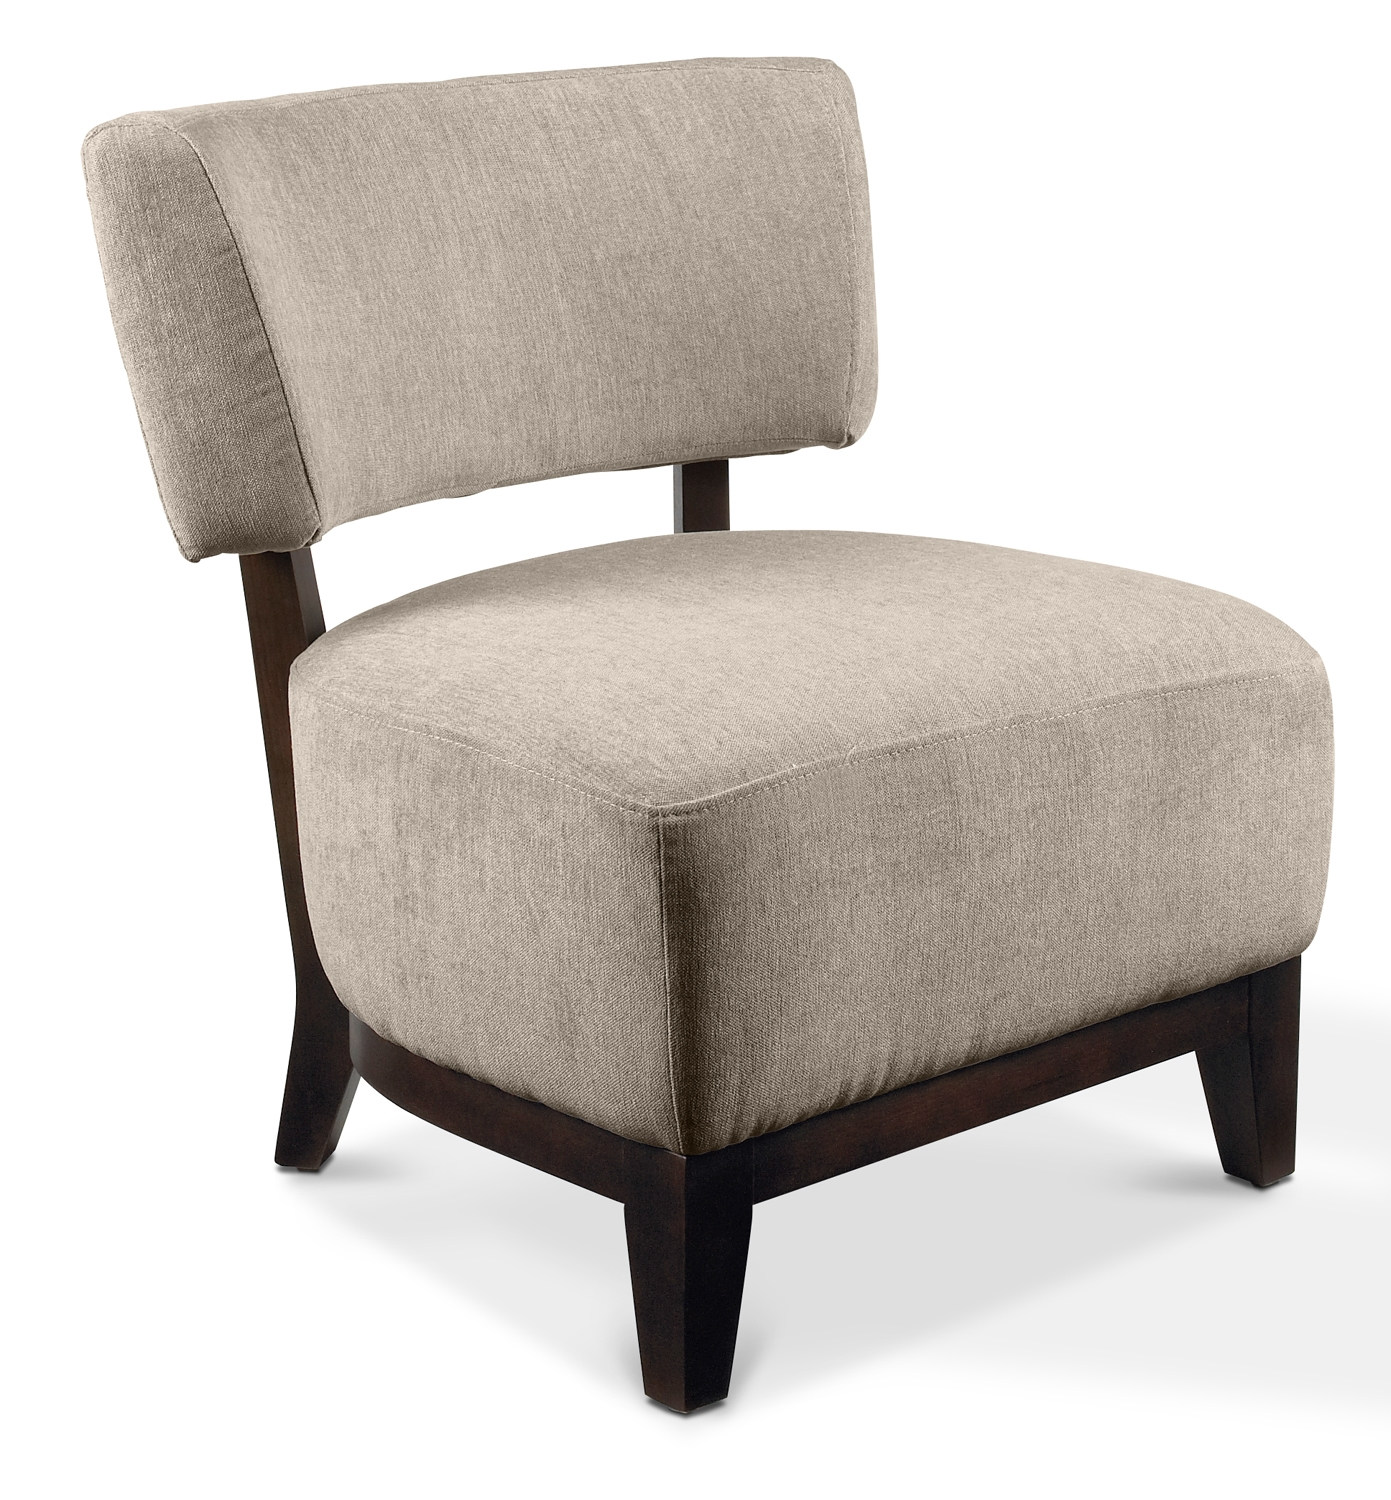 Best accent chair homesfeed for Small modern chair